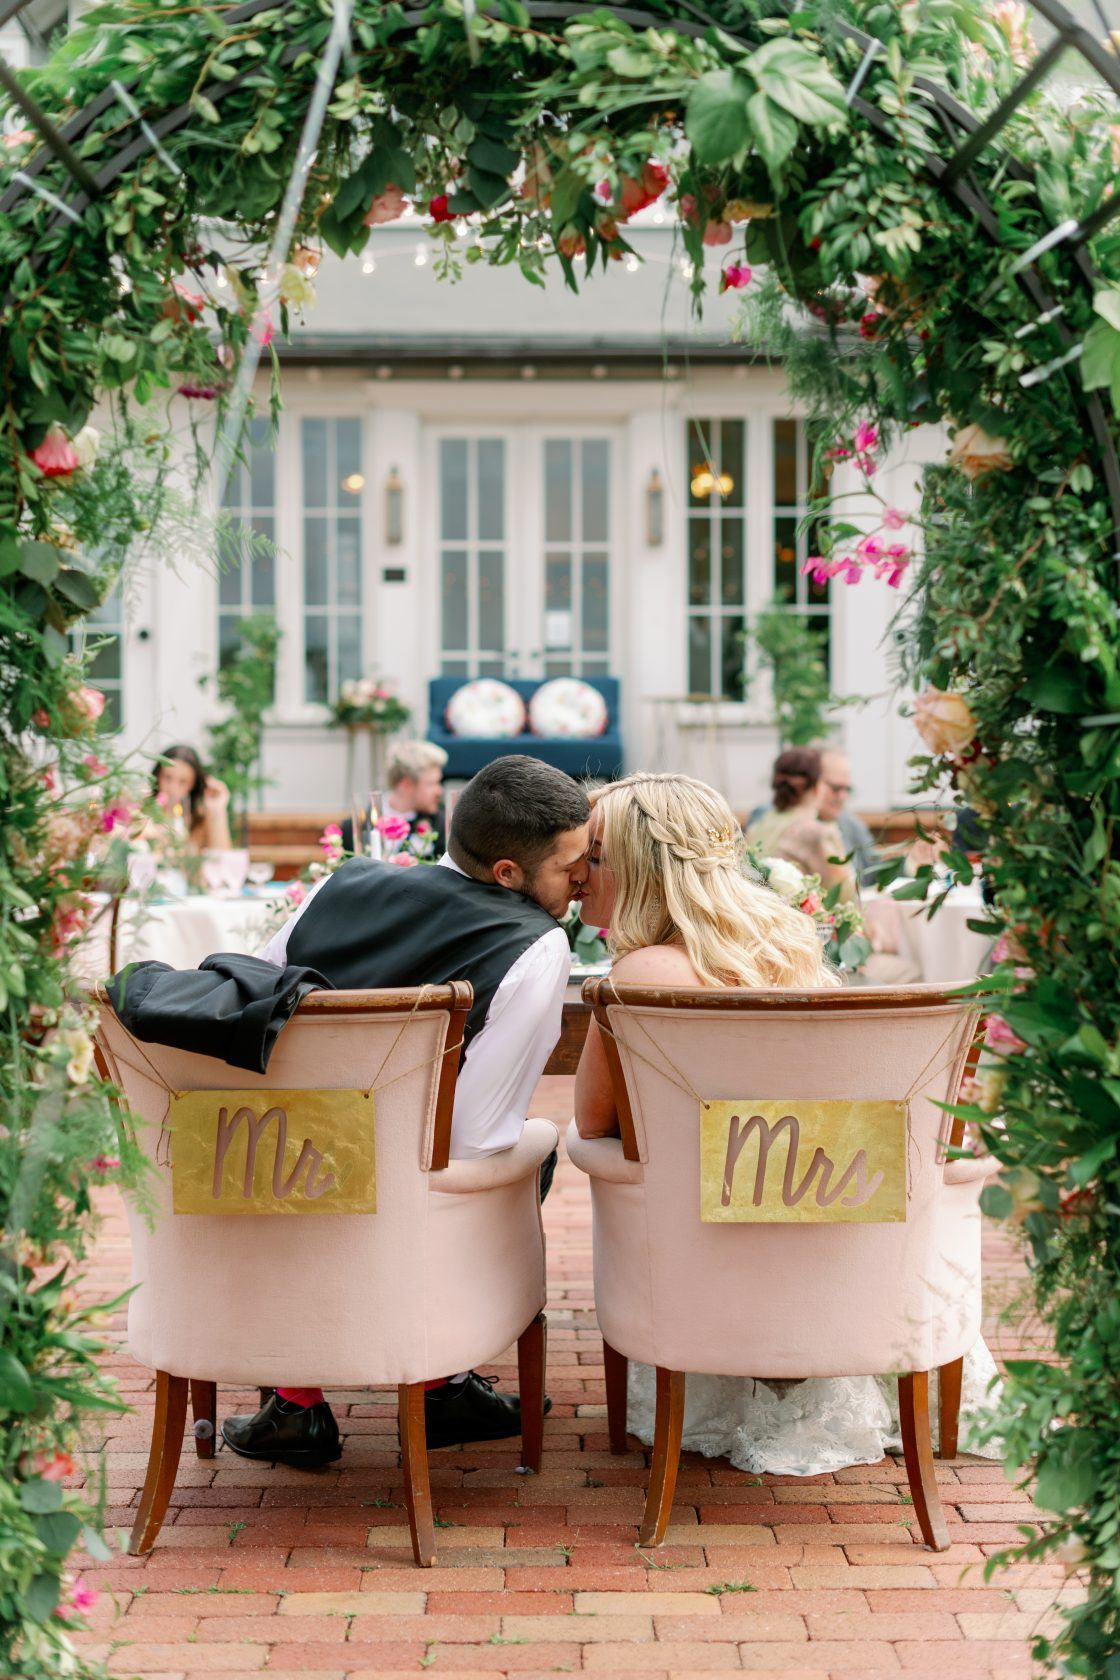 Mr Mrs Sweetheart Table Chair Signs